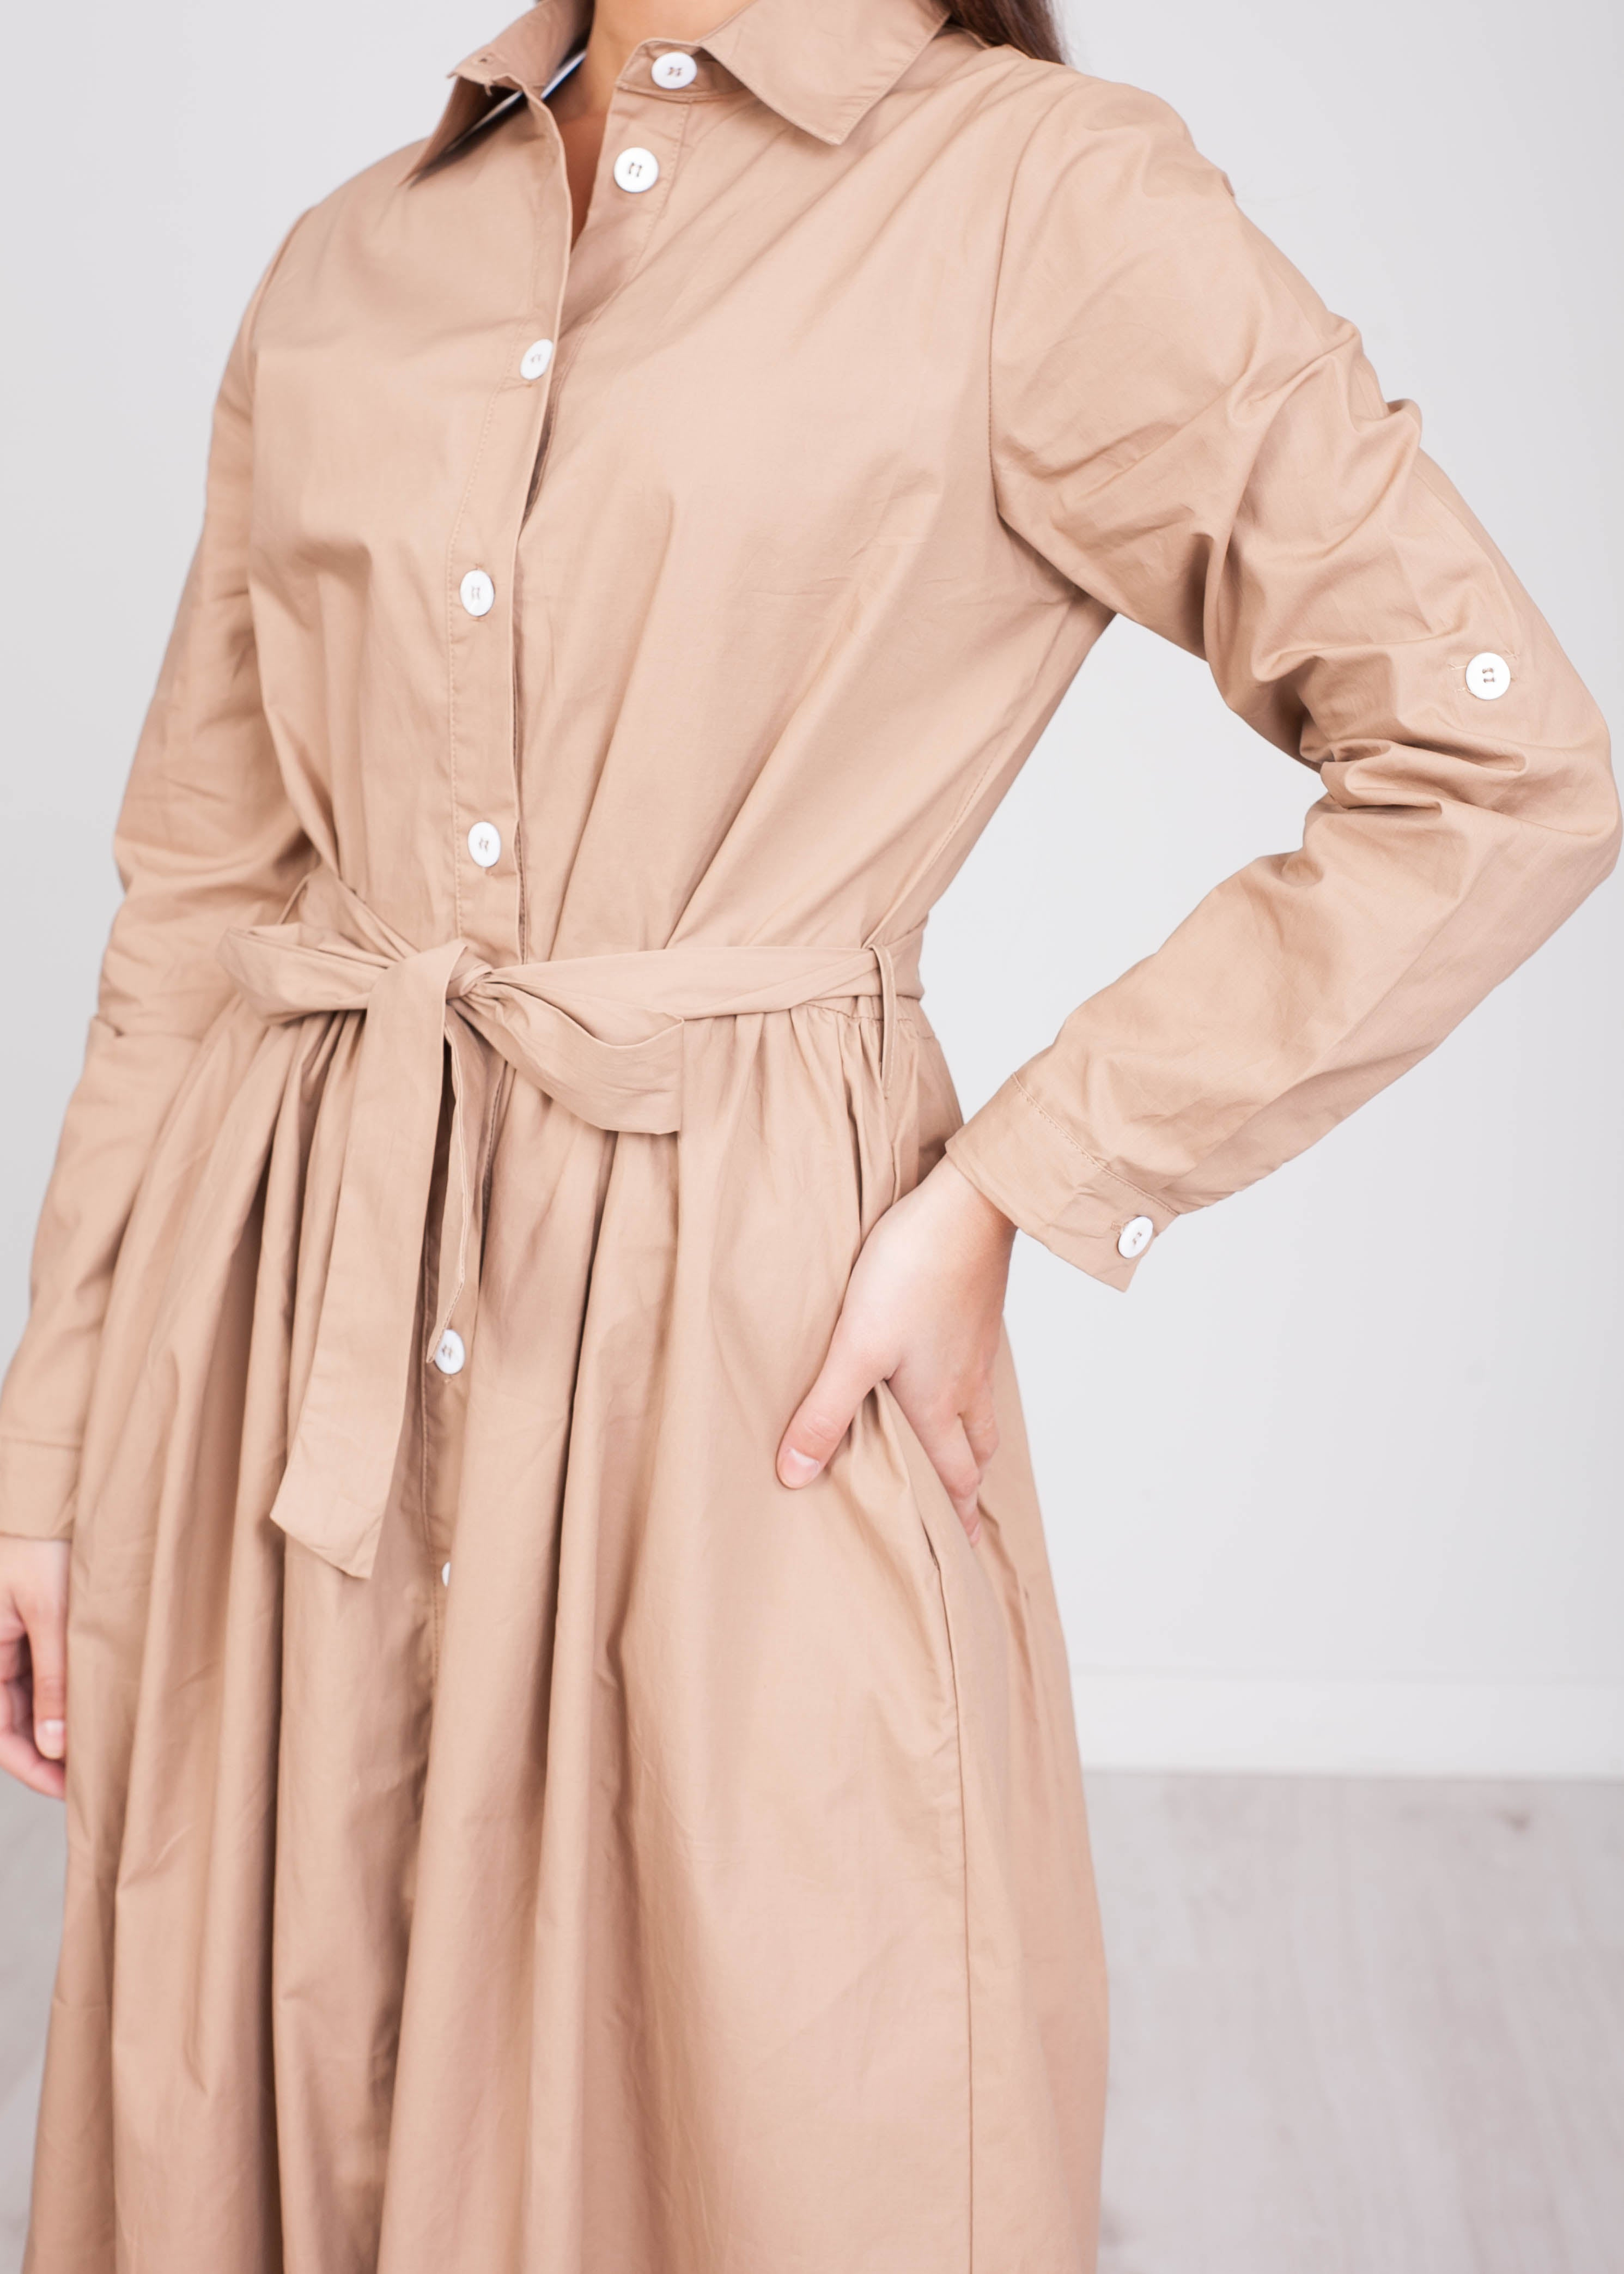 FiFi Beige Midi Dress